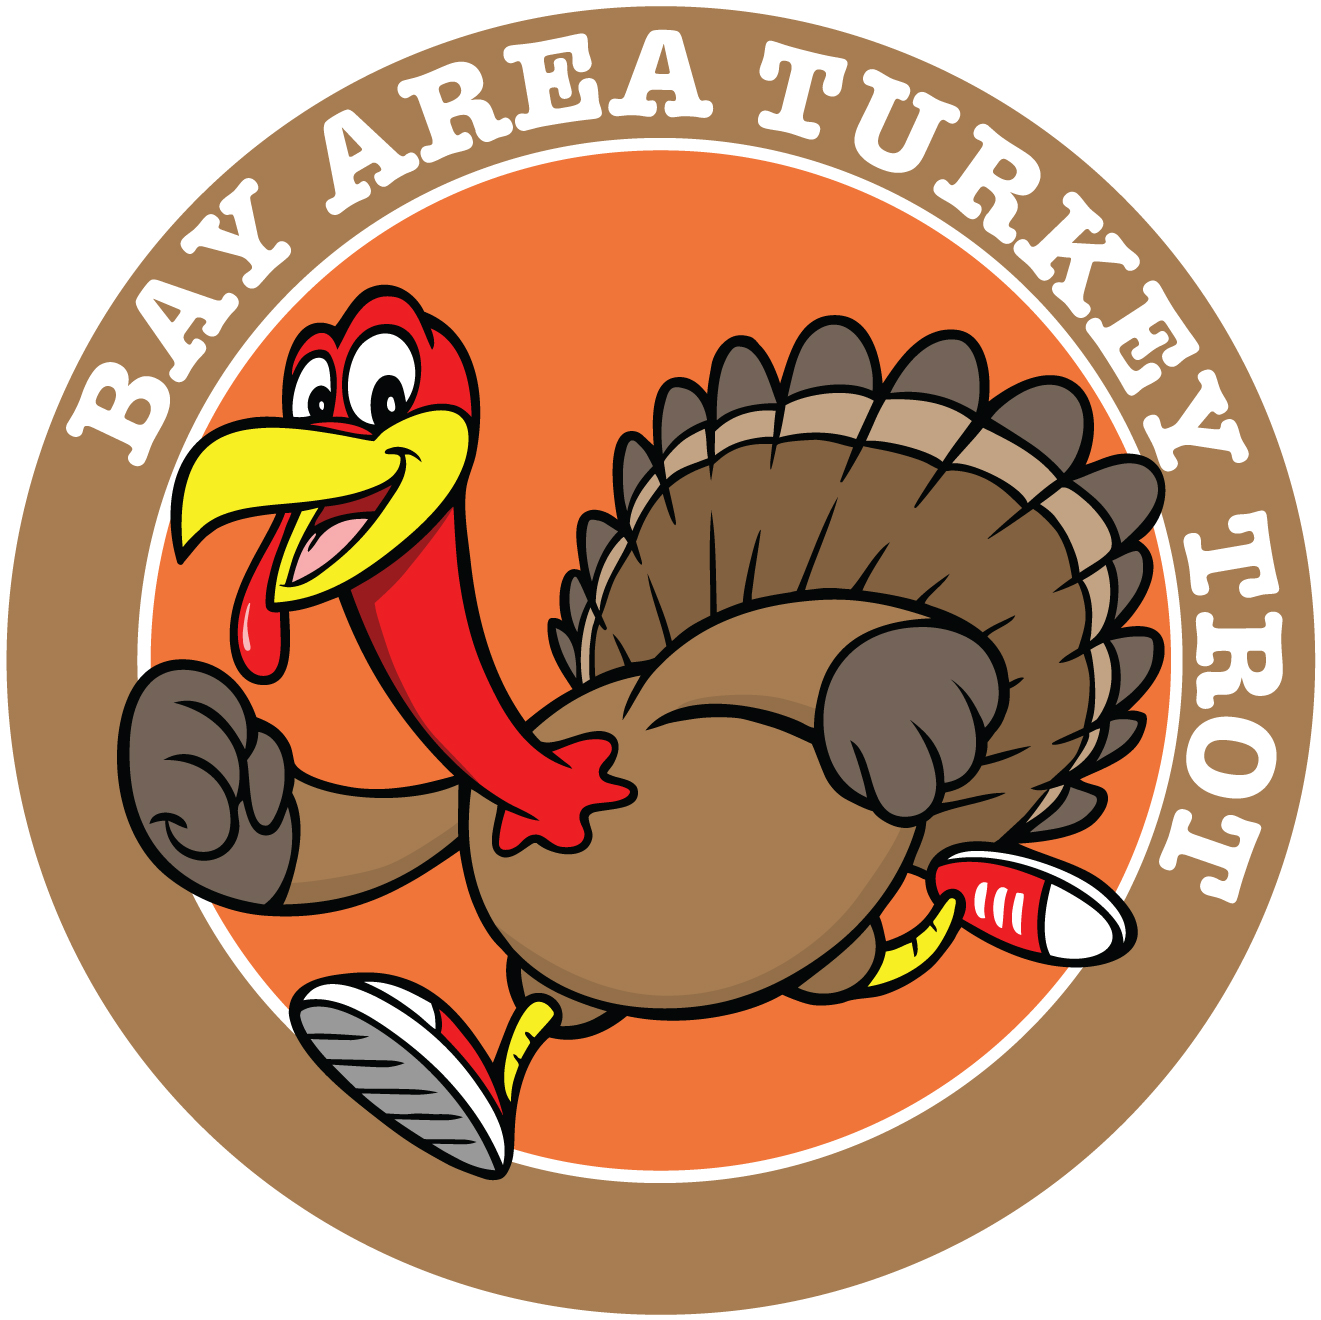 Bay Area Turkey Day 2020 Results